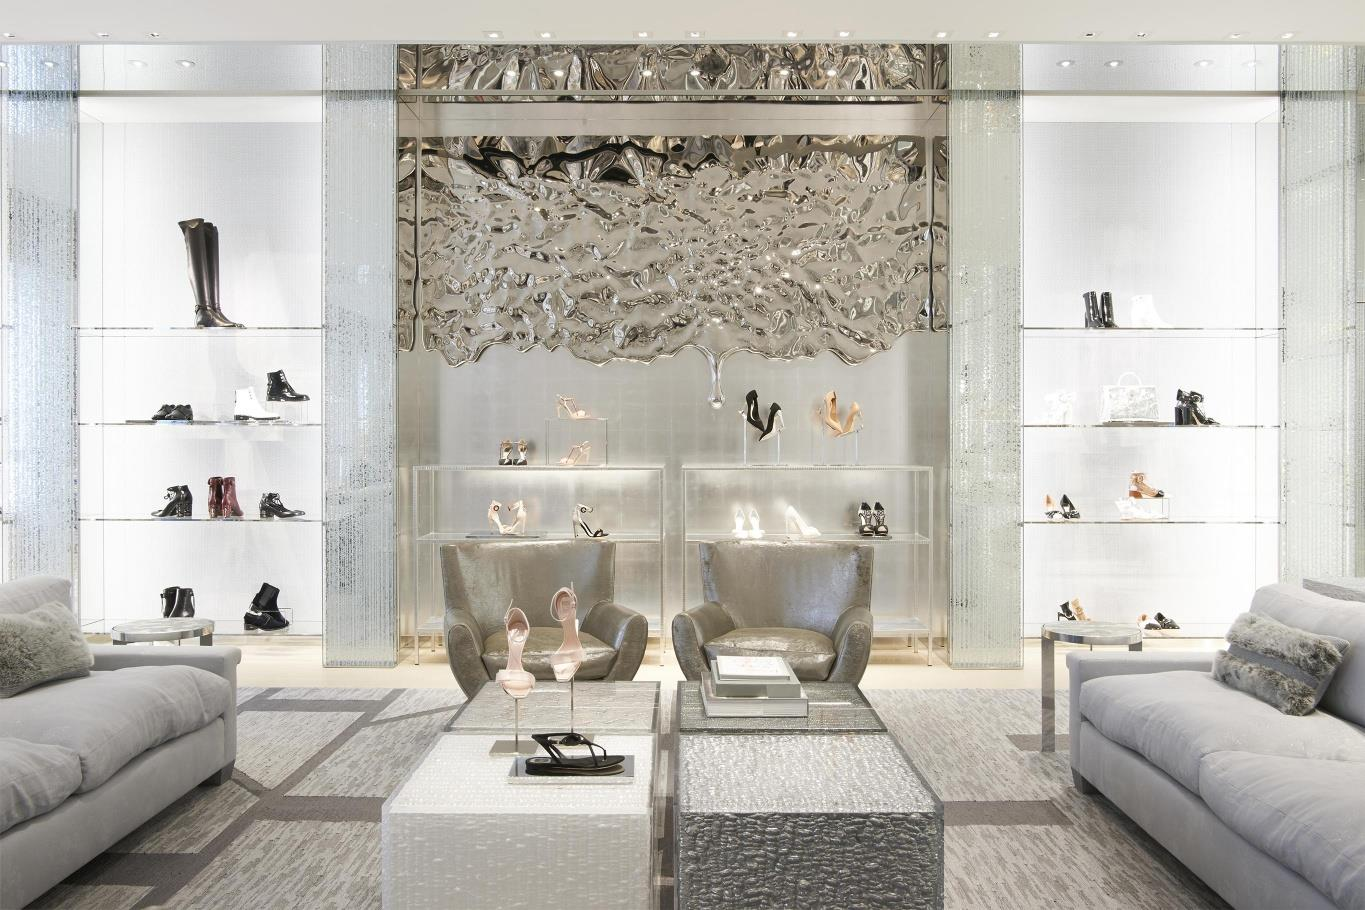 03slideshow_boutique_newbondstreet.jpg